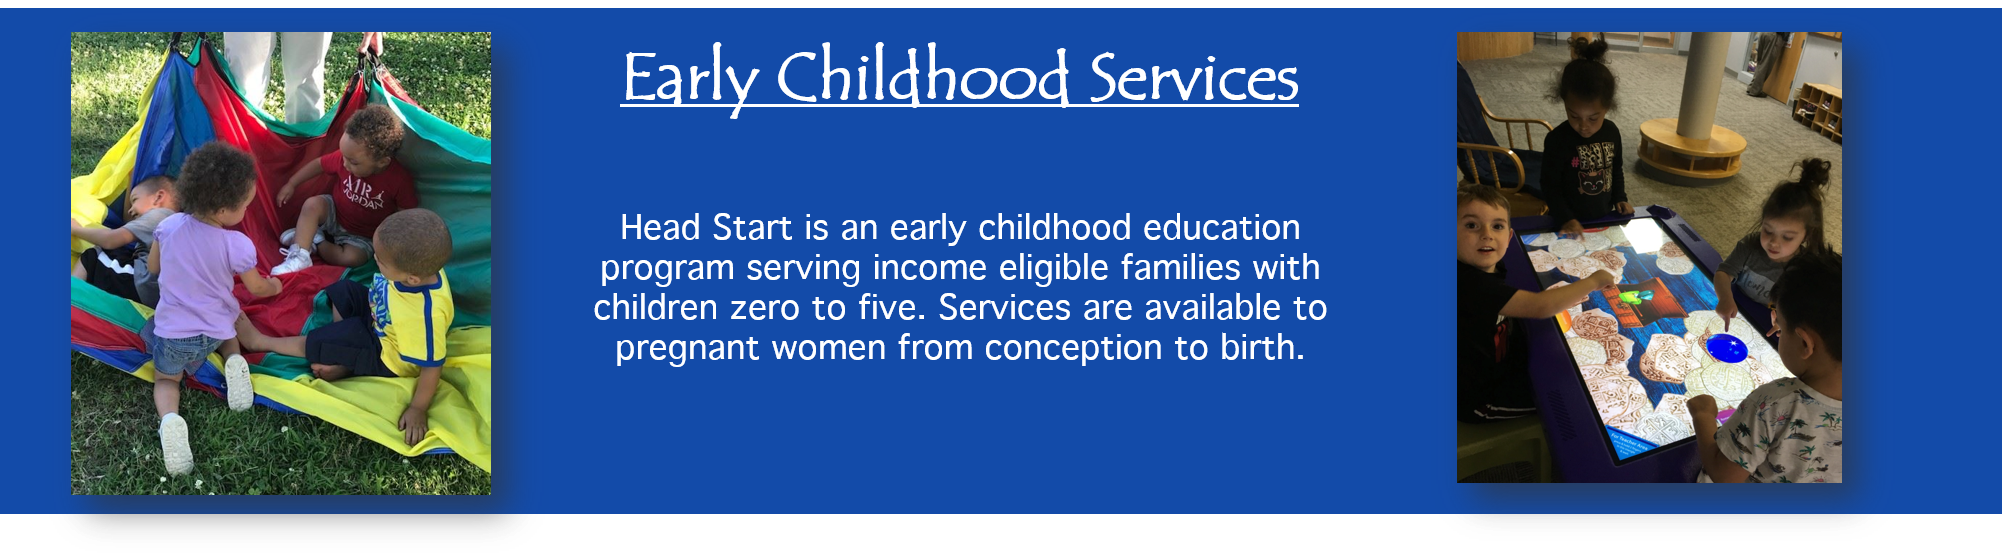 Early Childhood Services Header